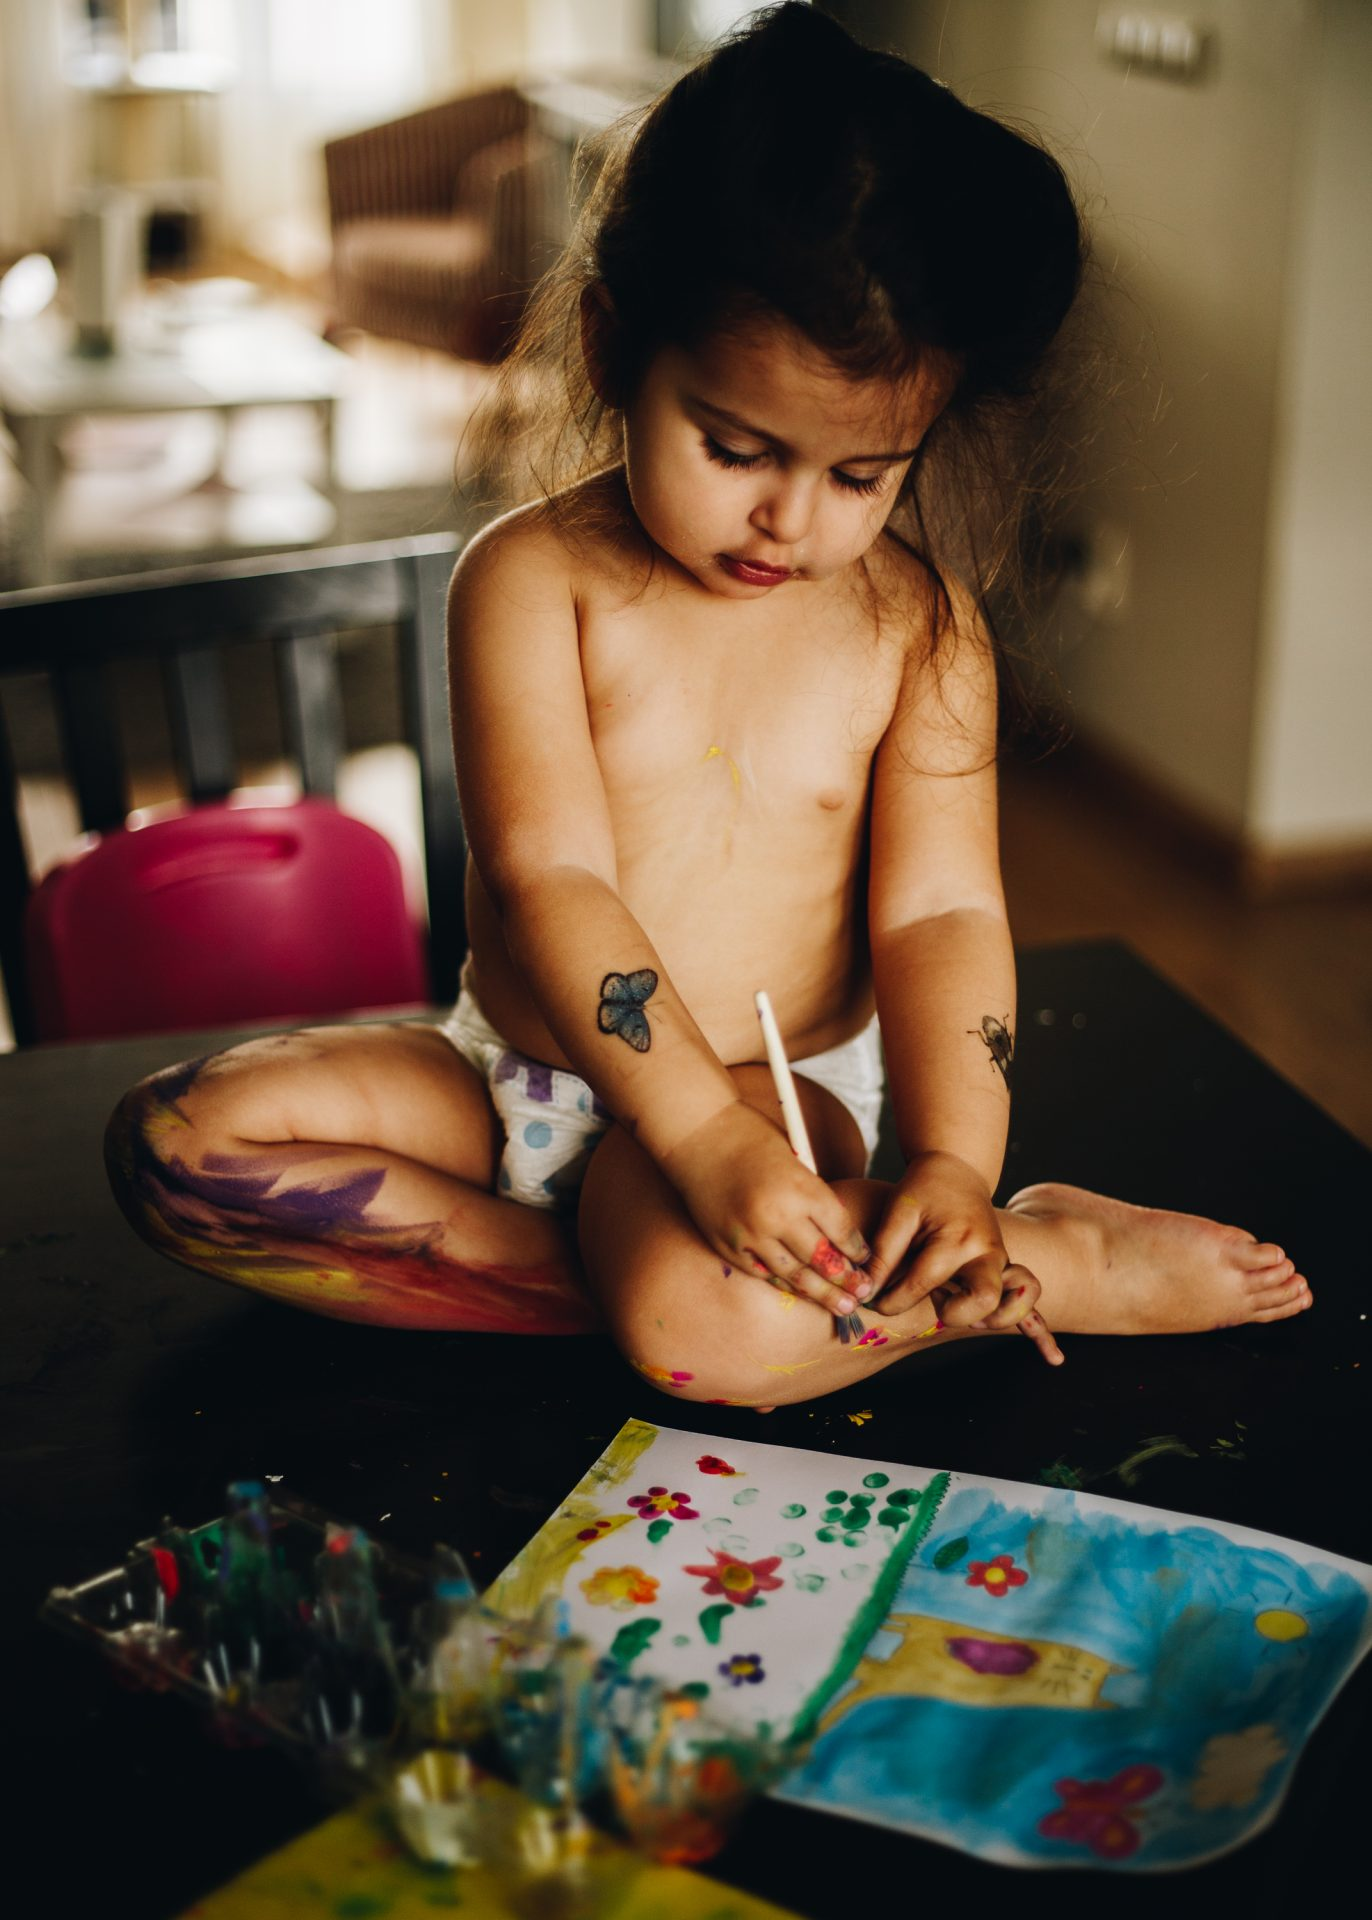 Toddler girl on the table painting her own legs with temperas. Natural style photographer. Amsterdam.